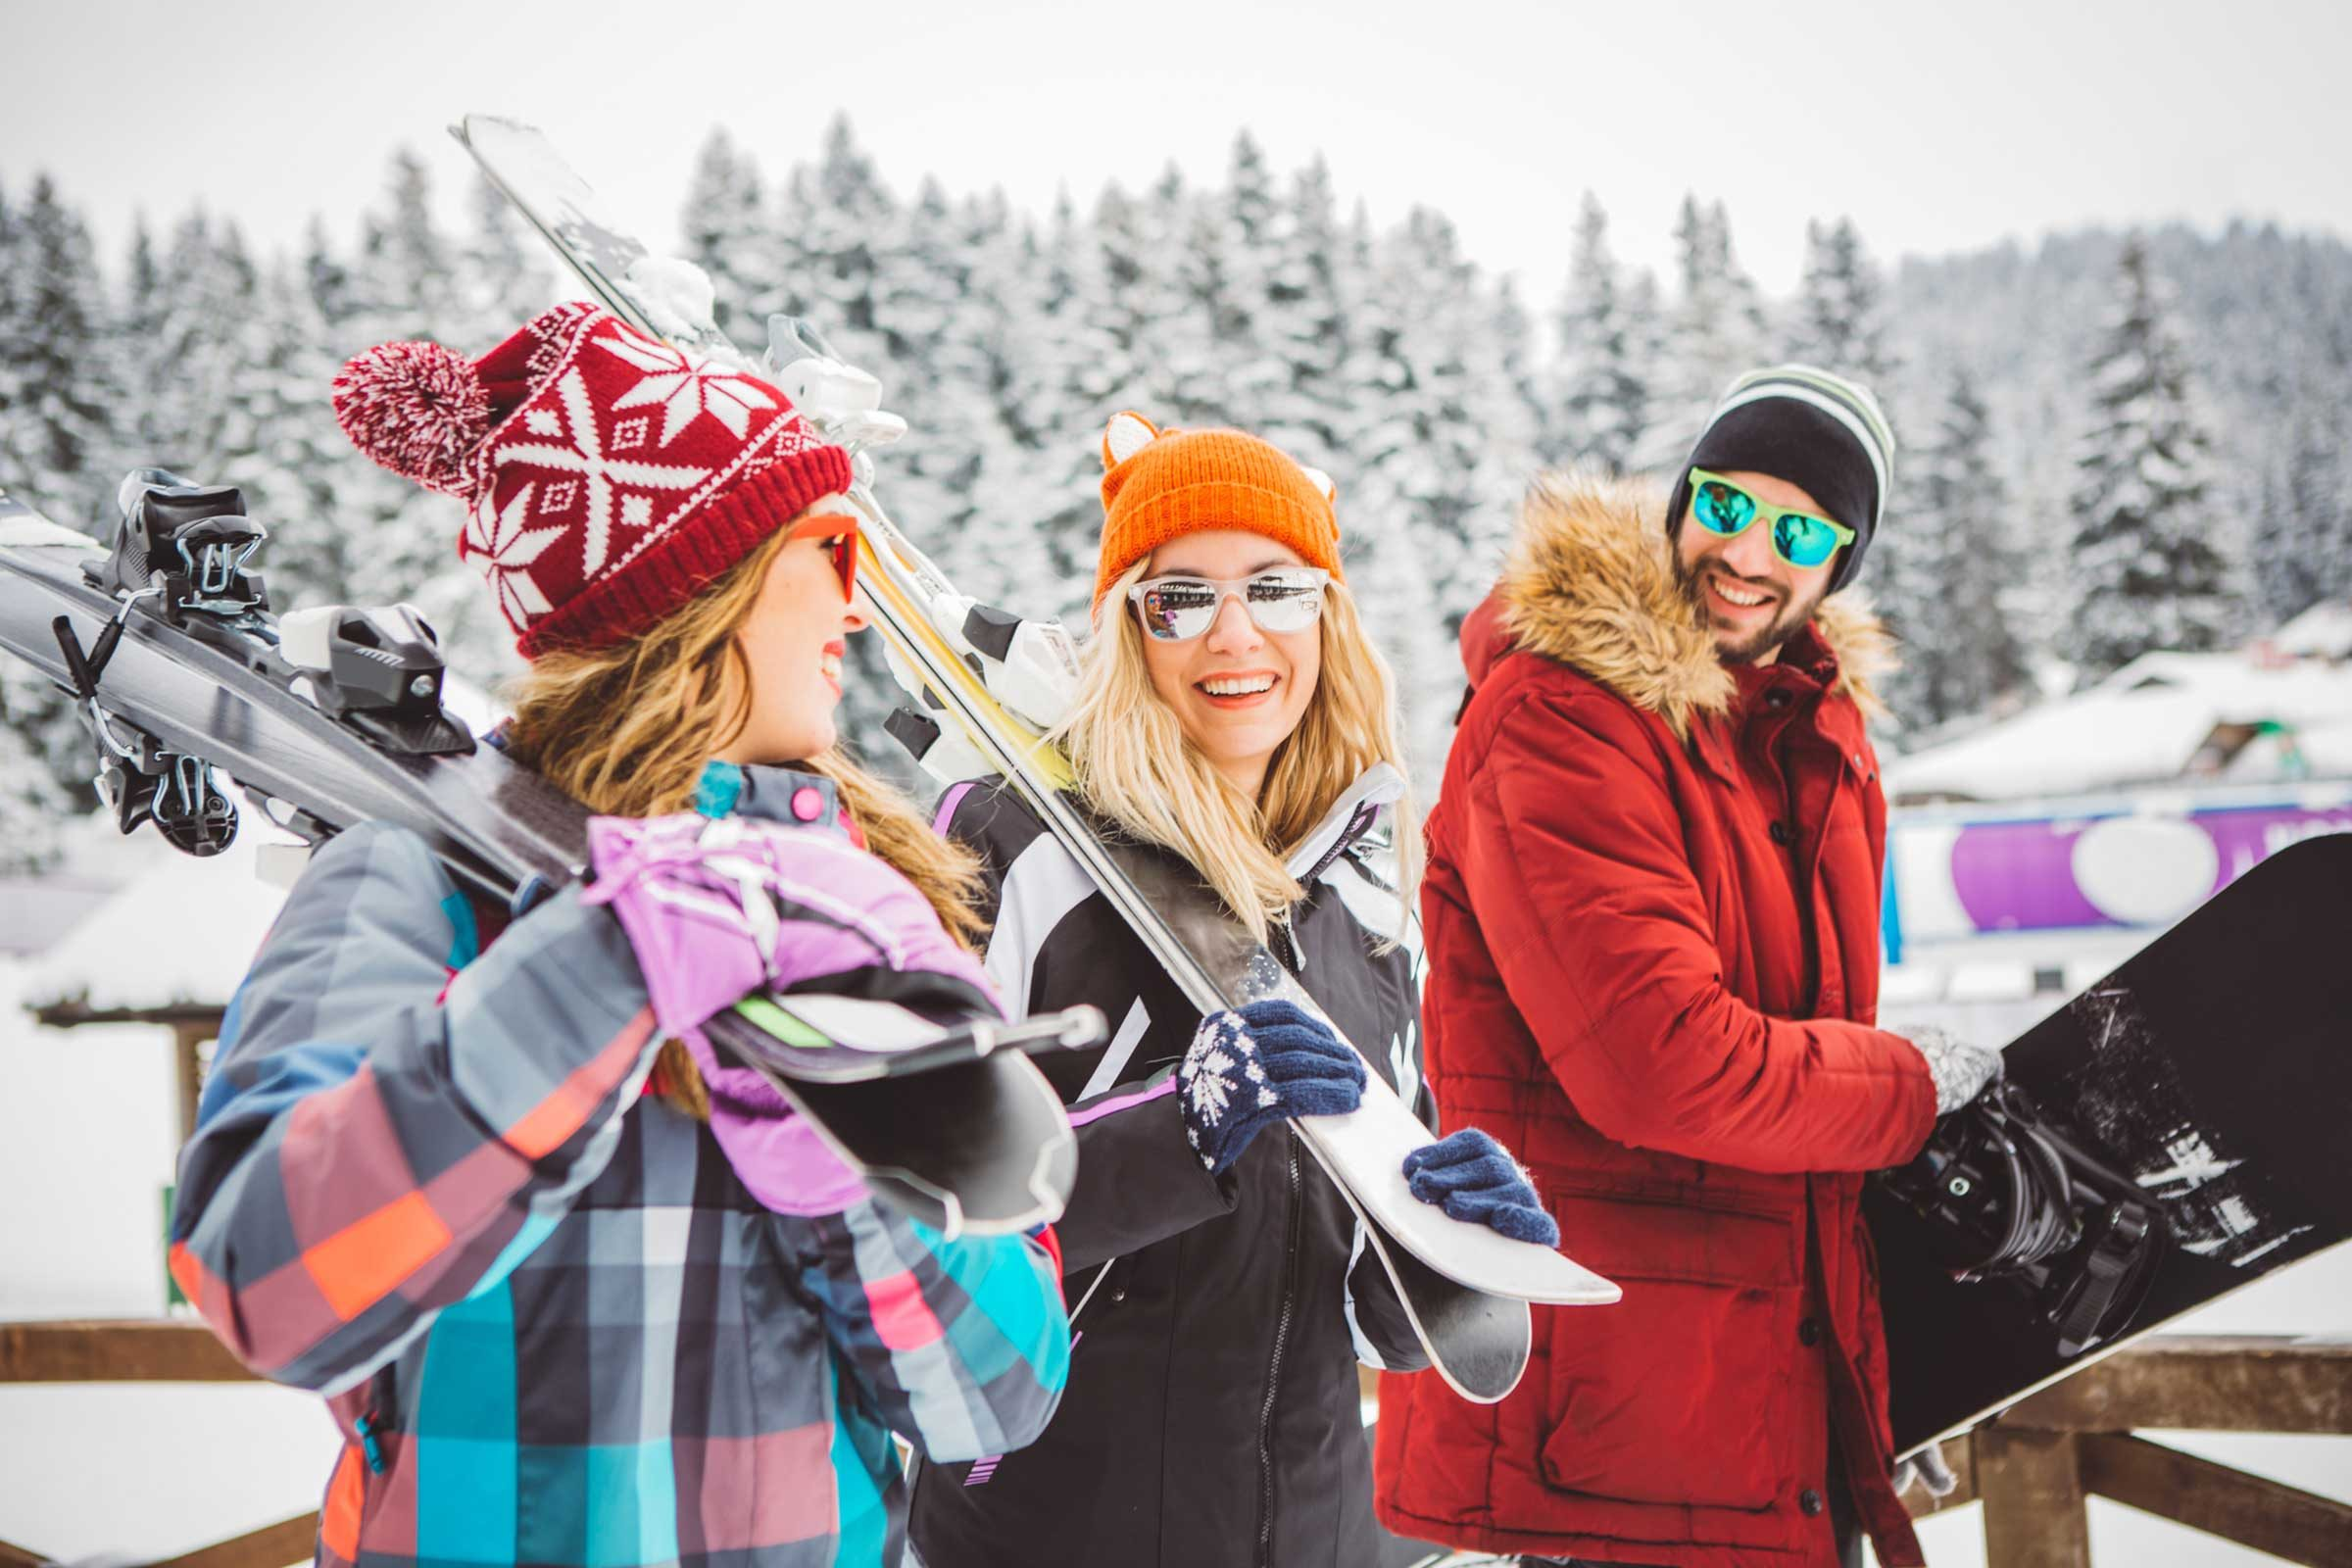 Best Non-Christmas Things to Do on Christmas Day   Reader's Digest